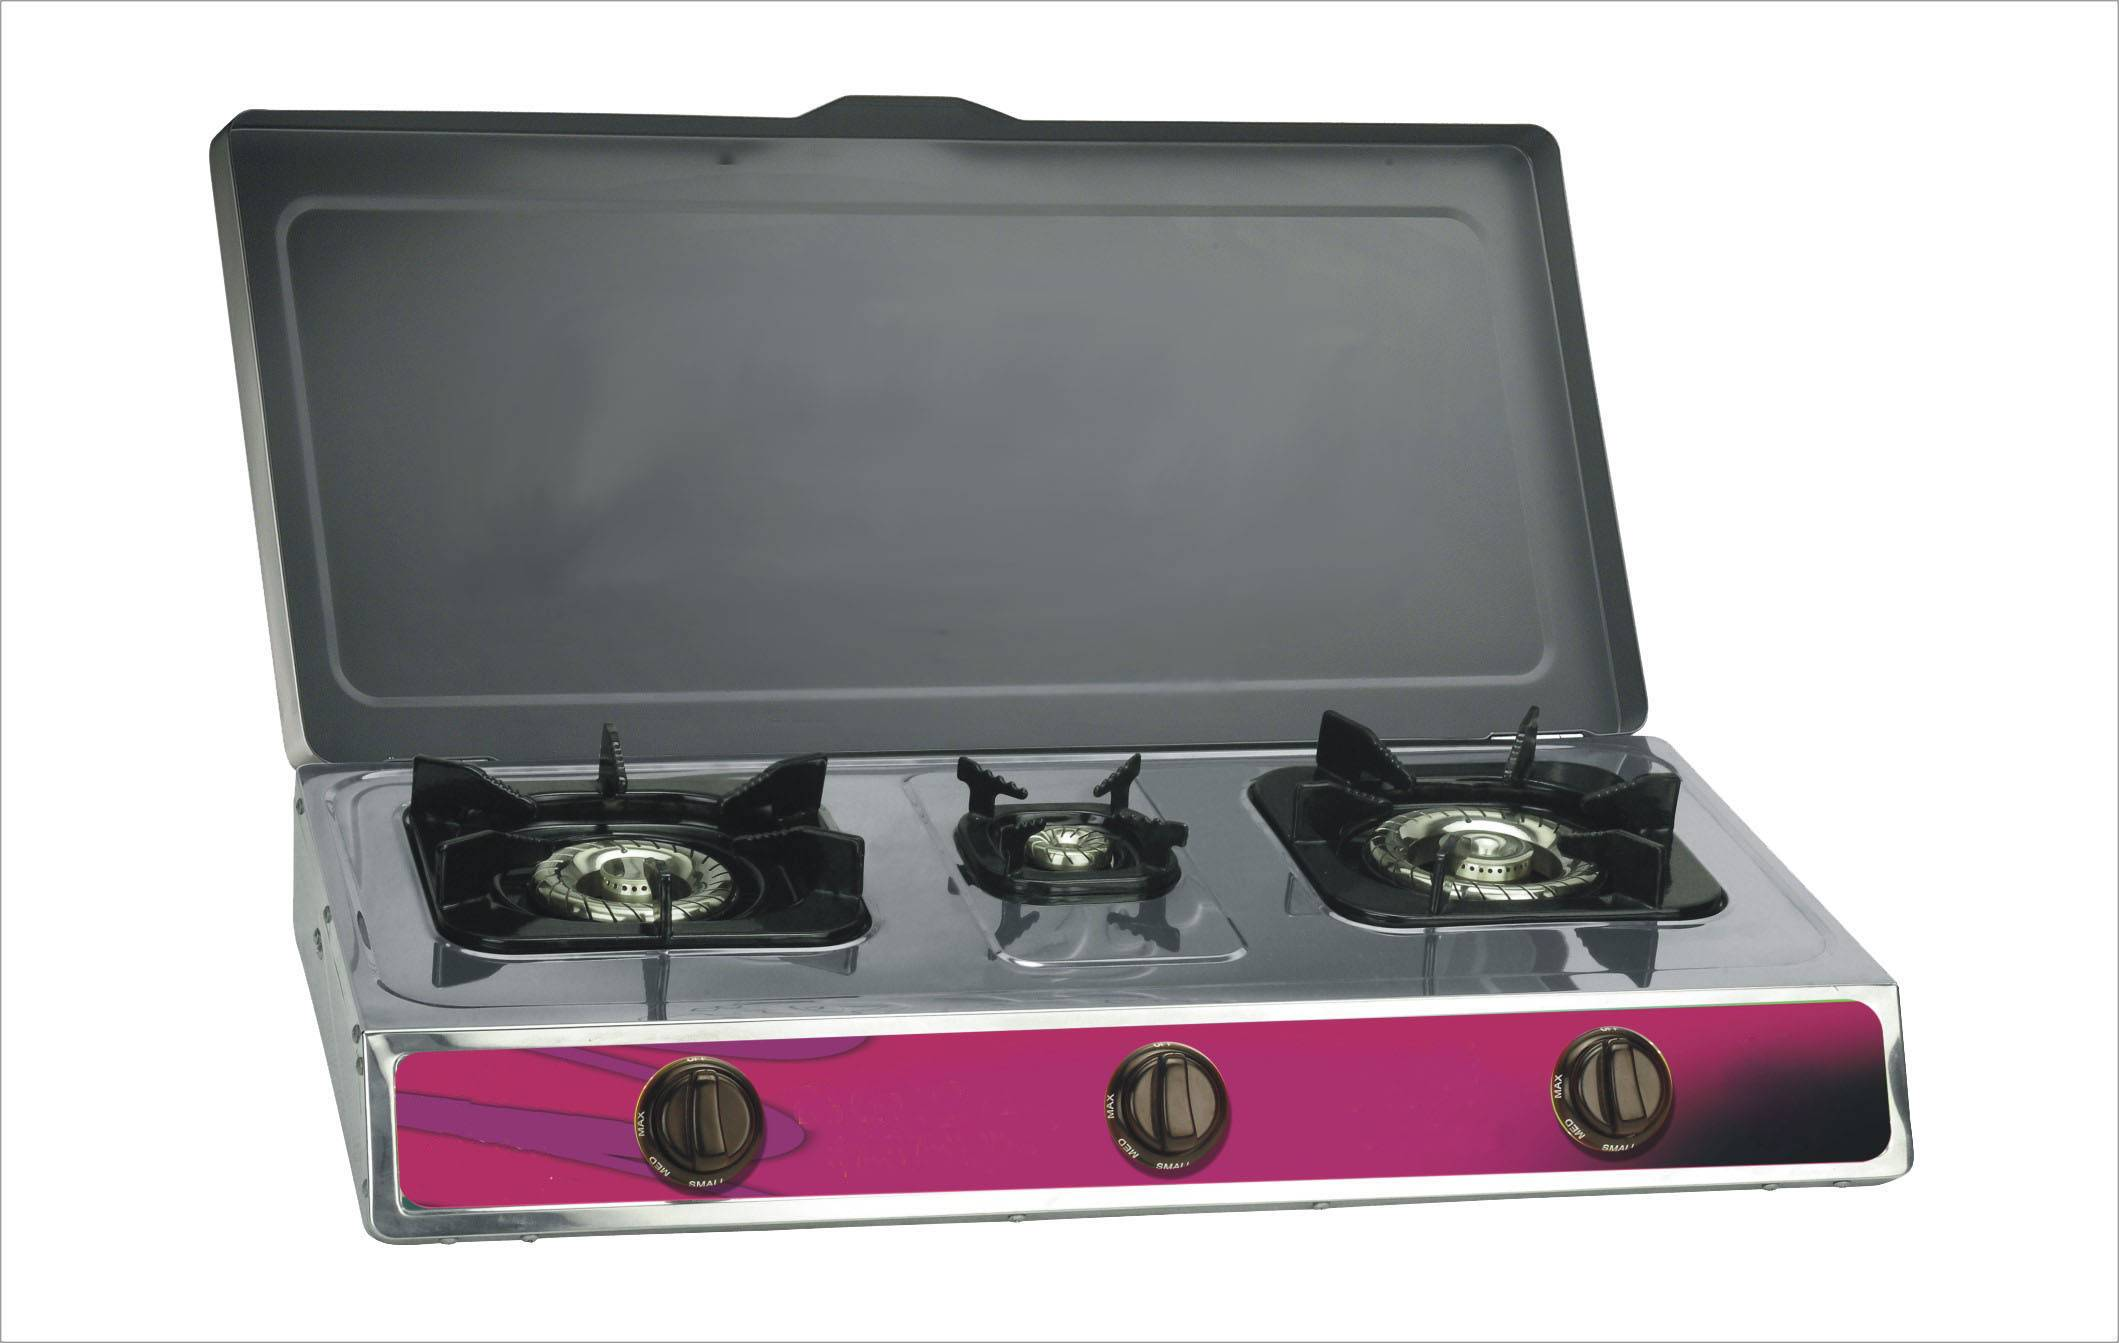 Stainless steel gas stove cooktops three burner with cover